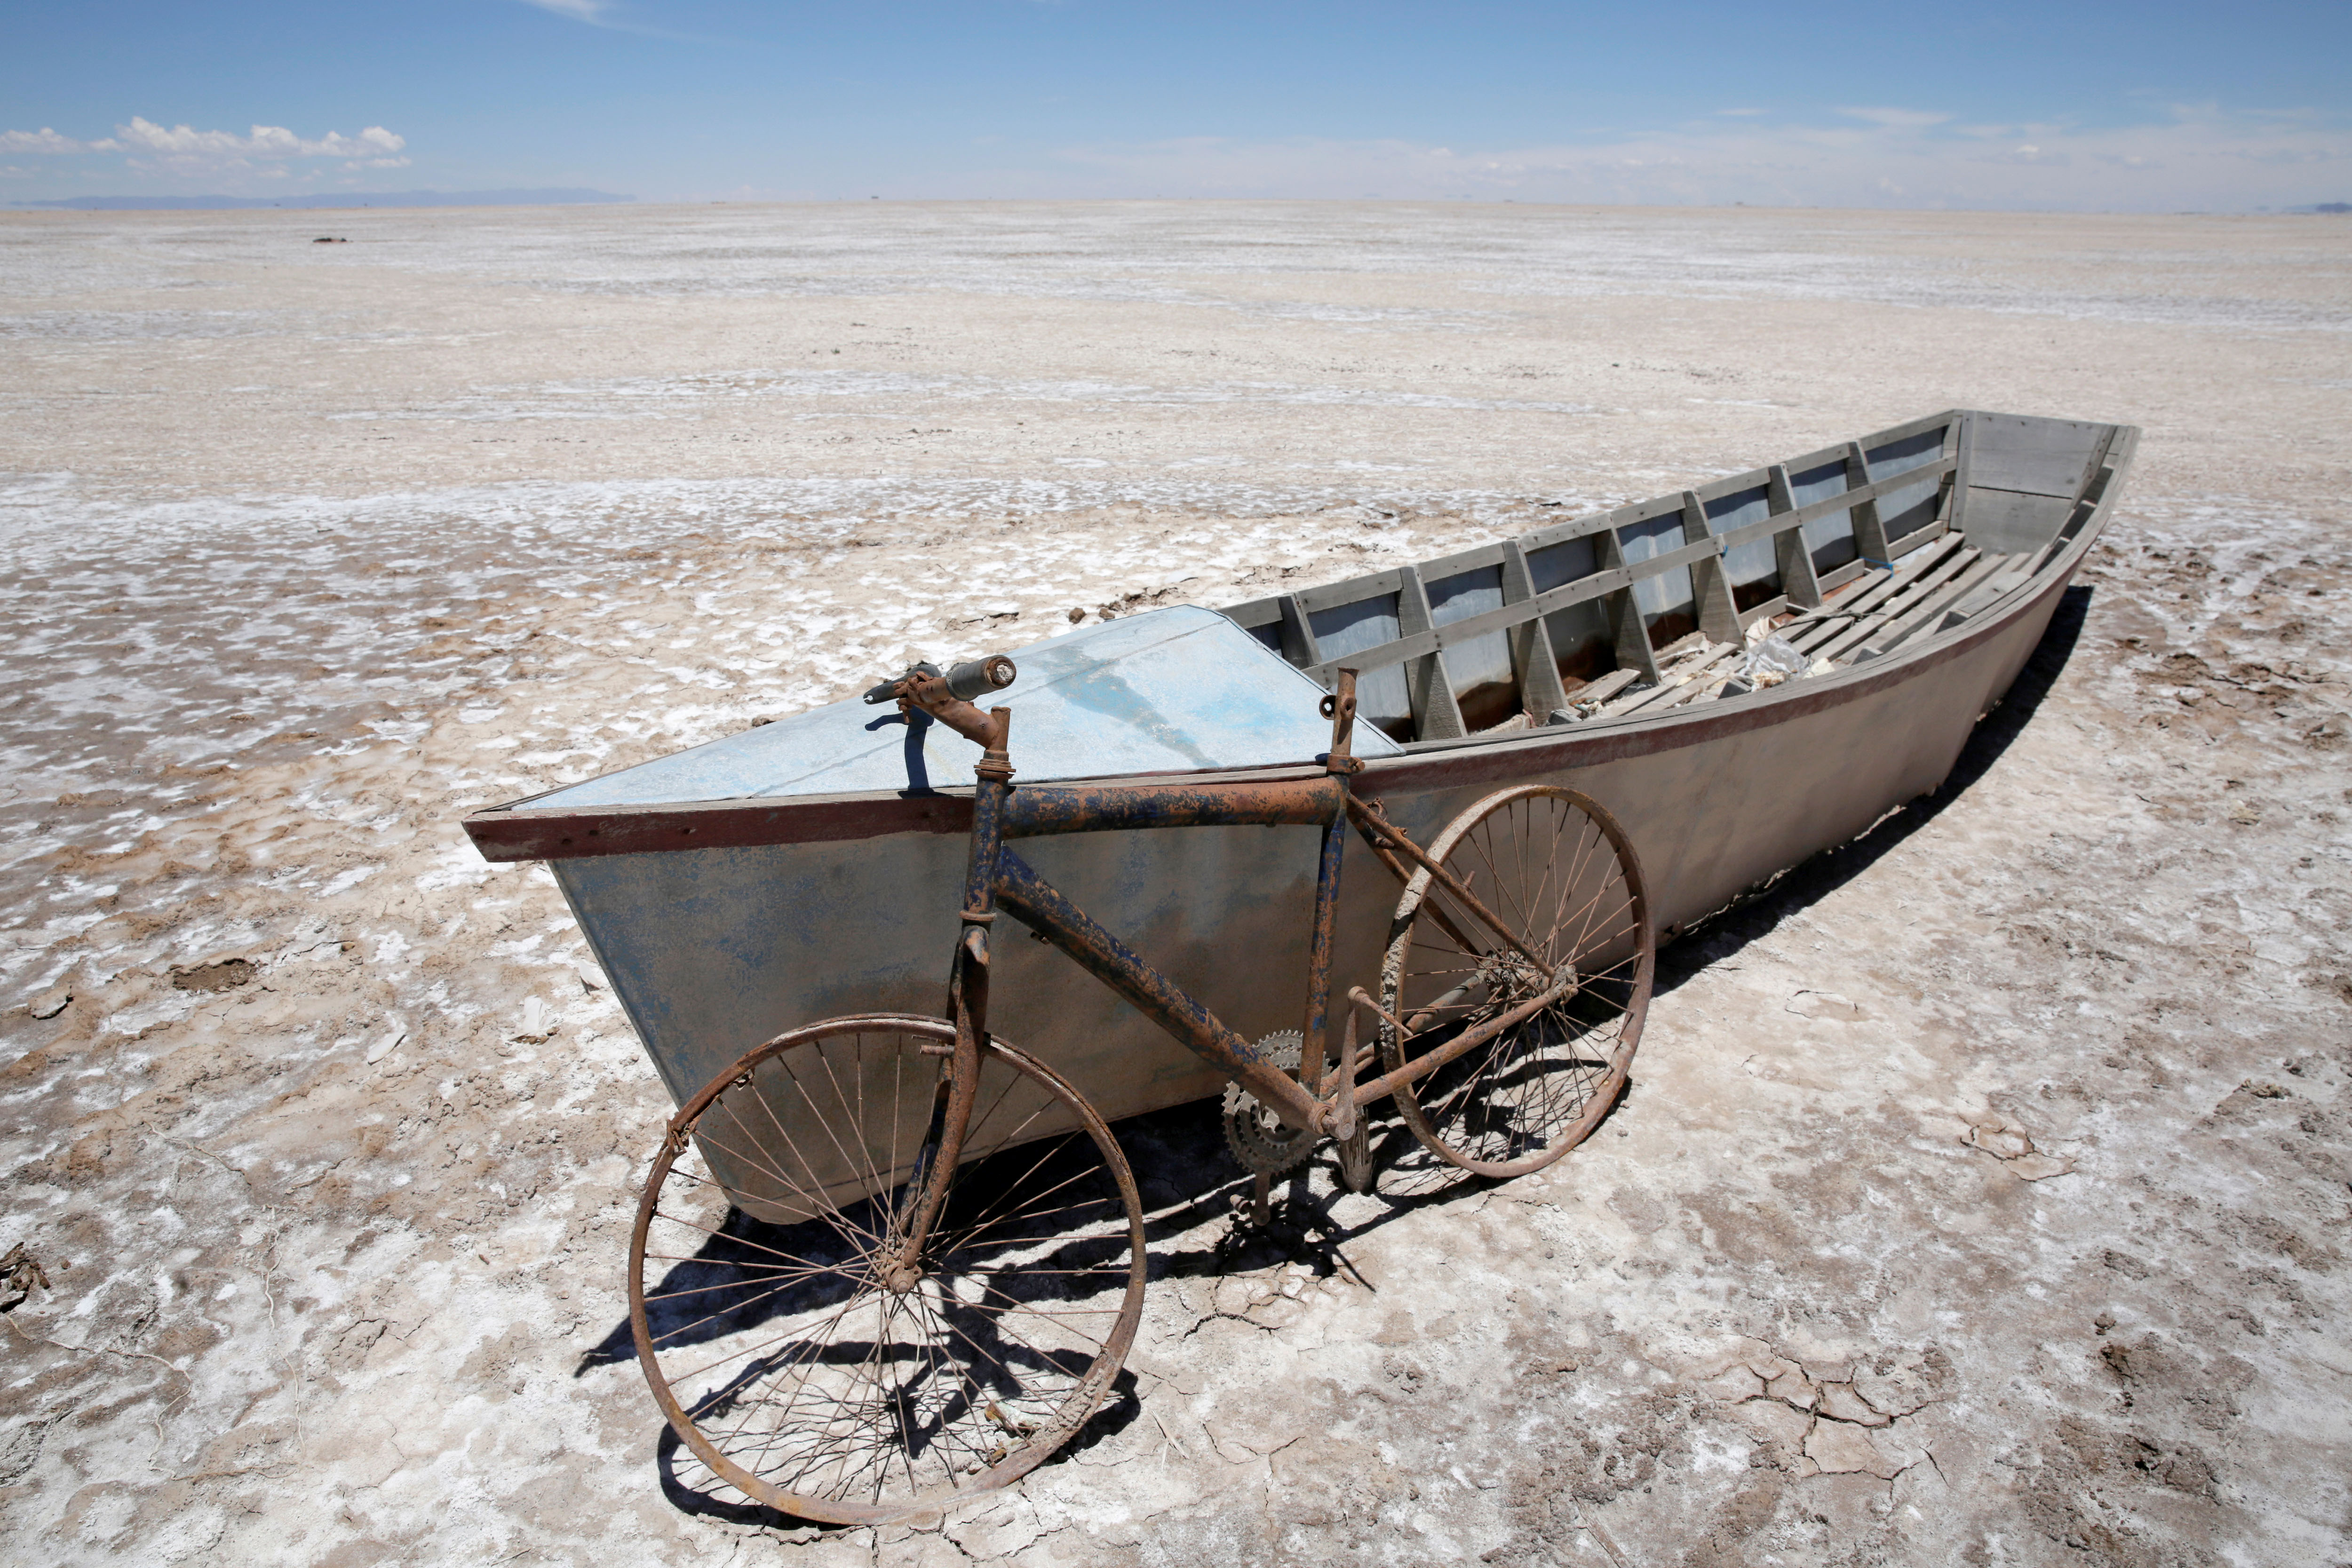 Bolivia's lake Poopo dries up and scientists fear refill unlikely